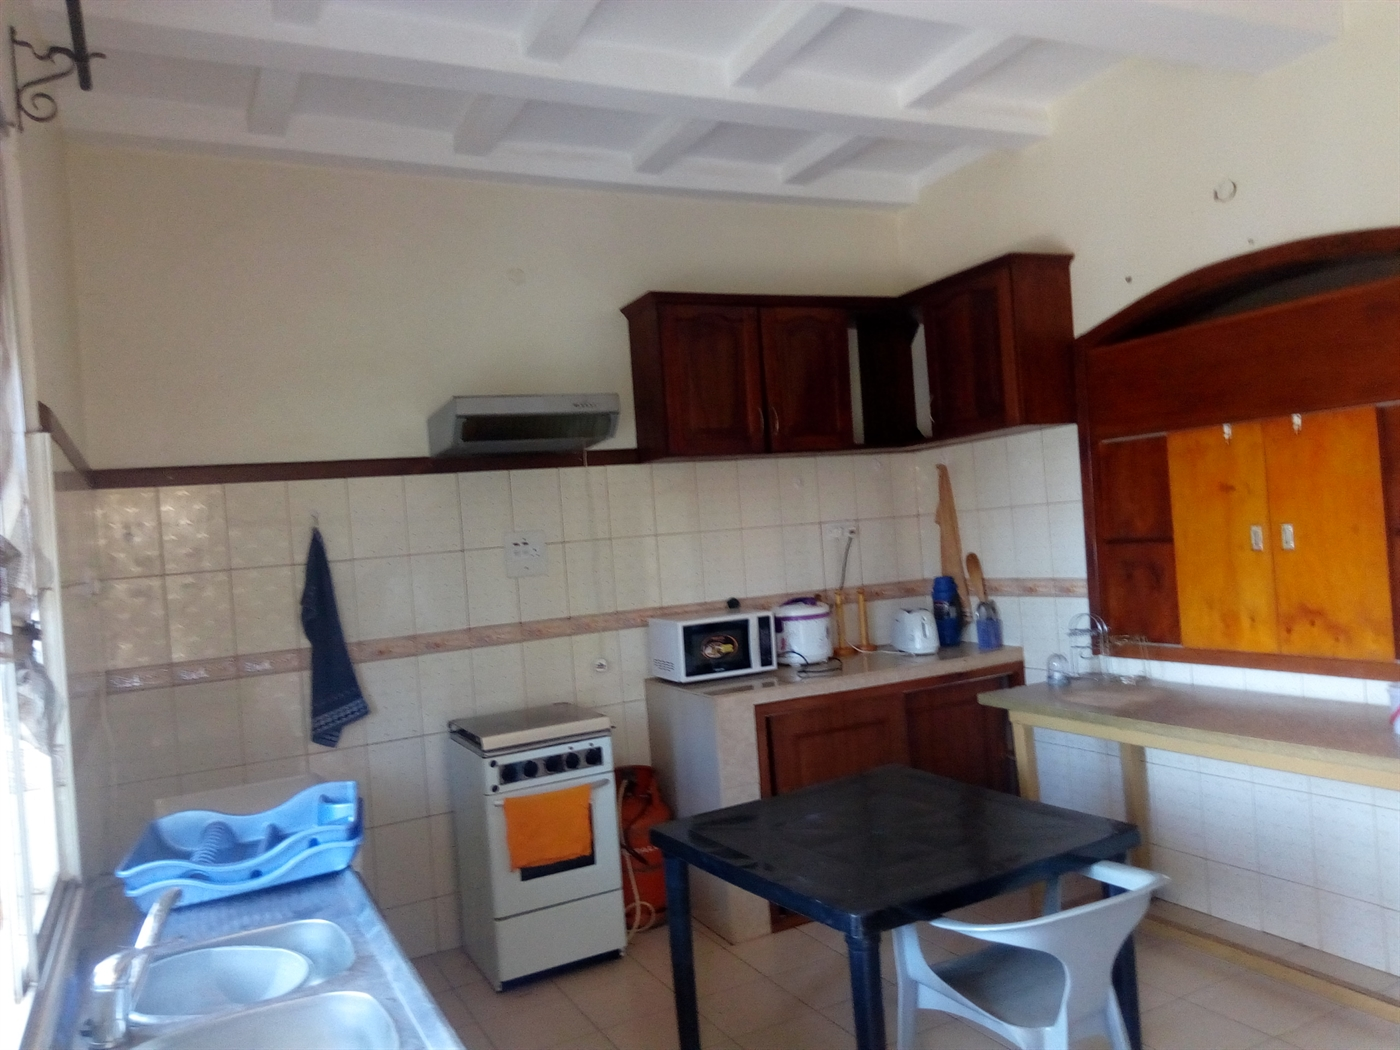 Apartment for rent in Bwebajja Wakiso